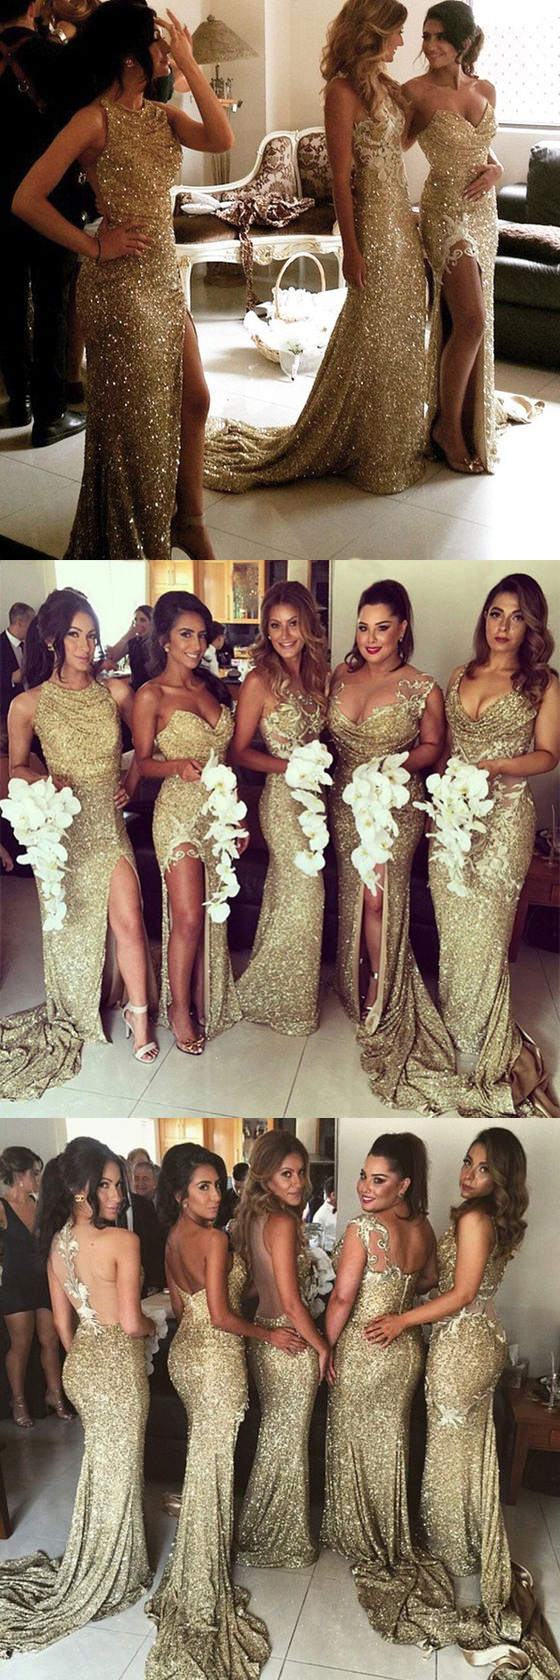 Sequin bridesmaid dresses long mismatched bridesmaid dresses sequin bridesmaid dresses long mismatched bridesmaid dresses sexy gorgeous bridesmaid dresses sparkly wedding ombrellifo Gallery